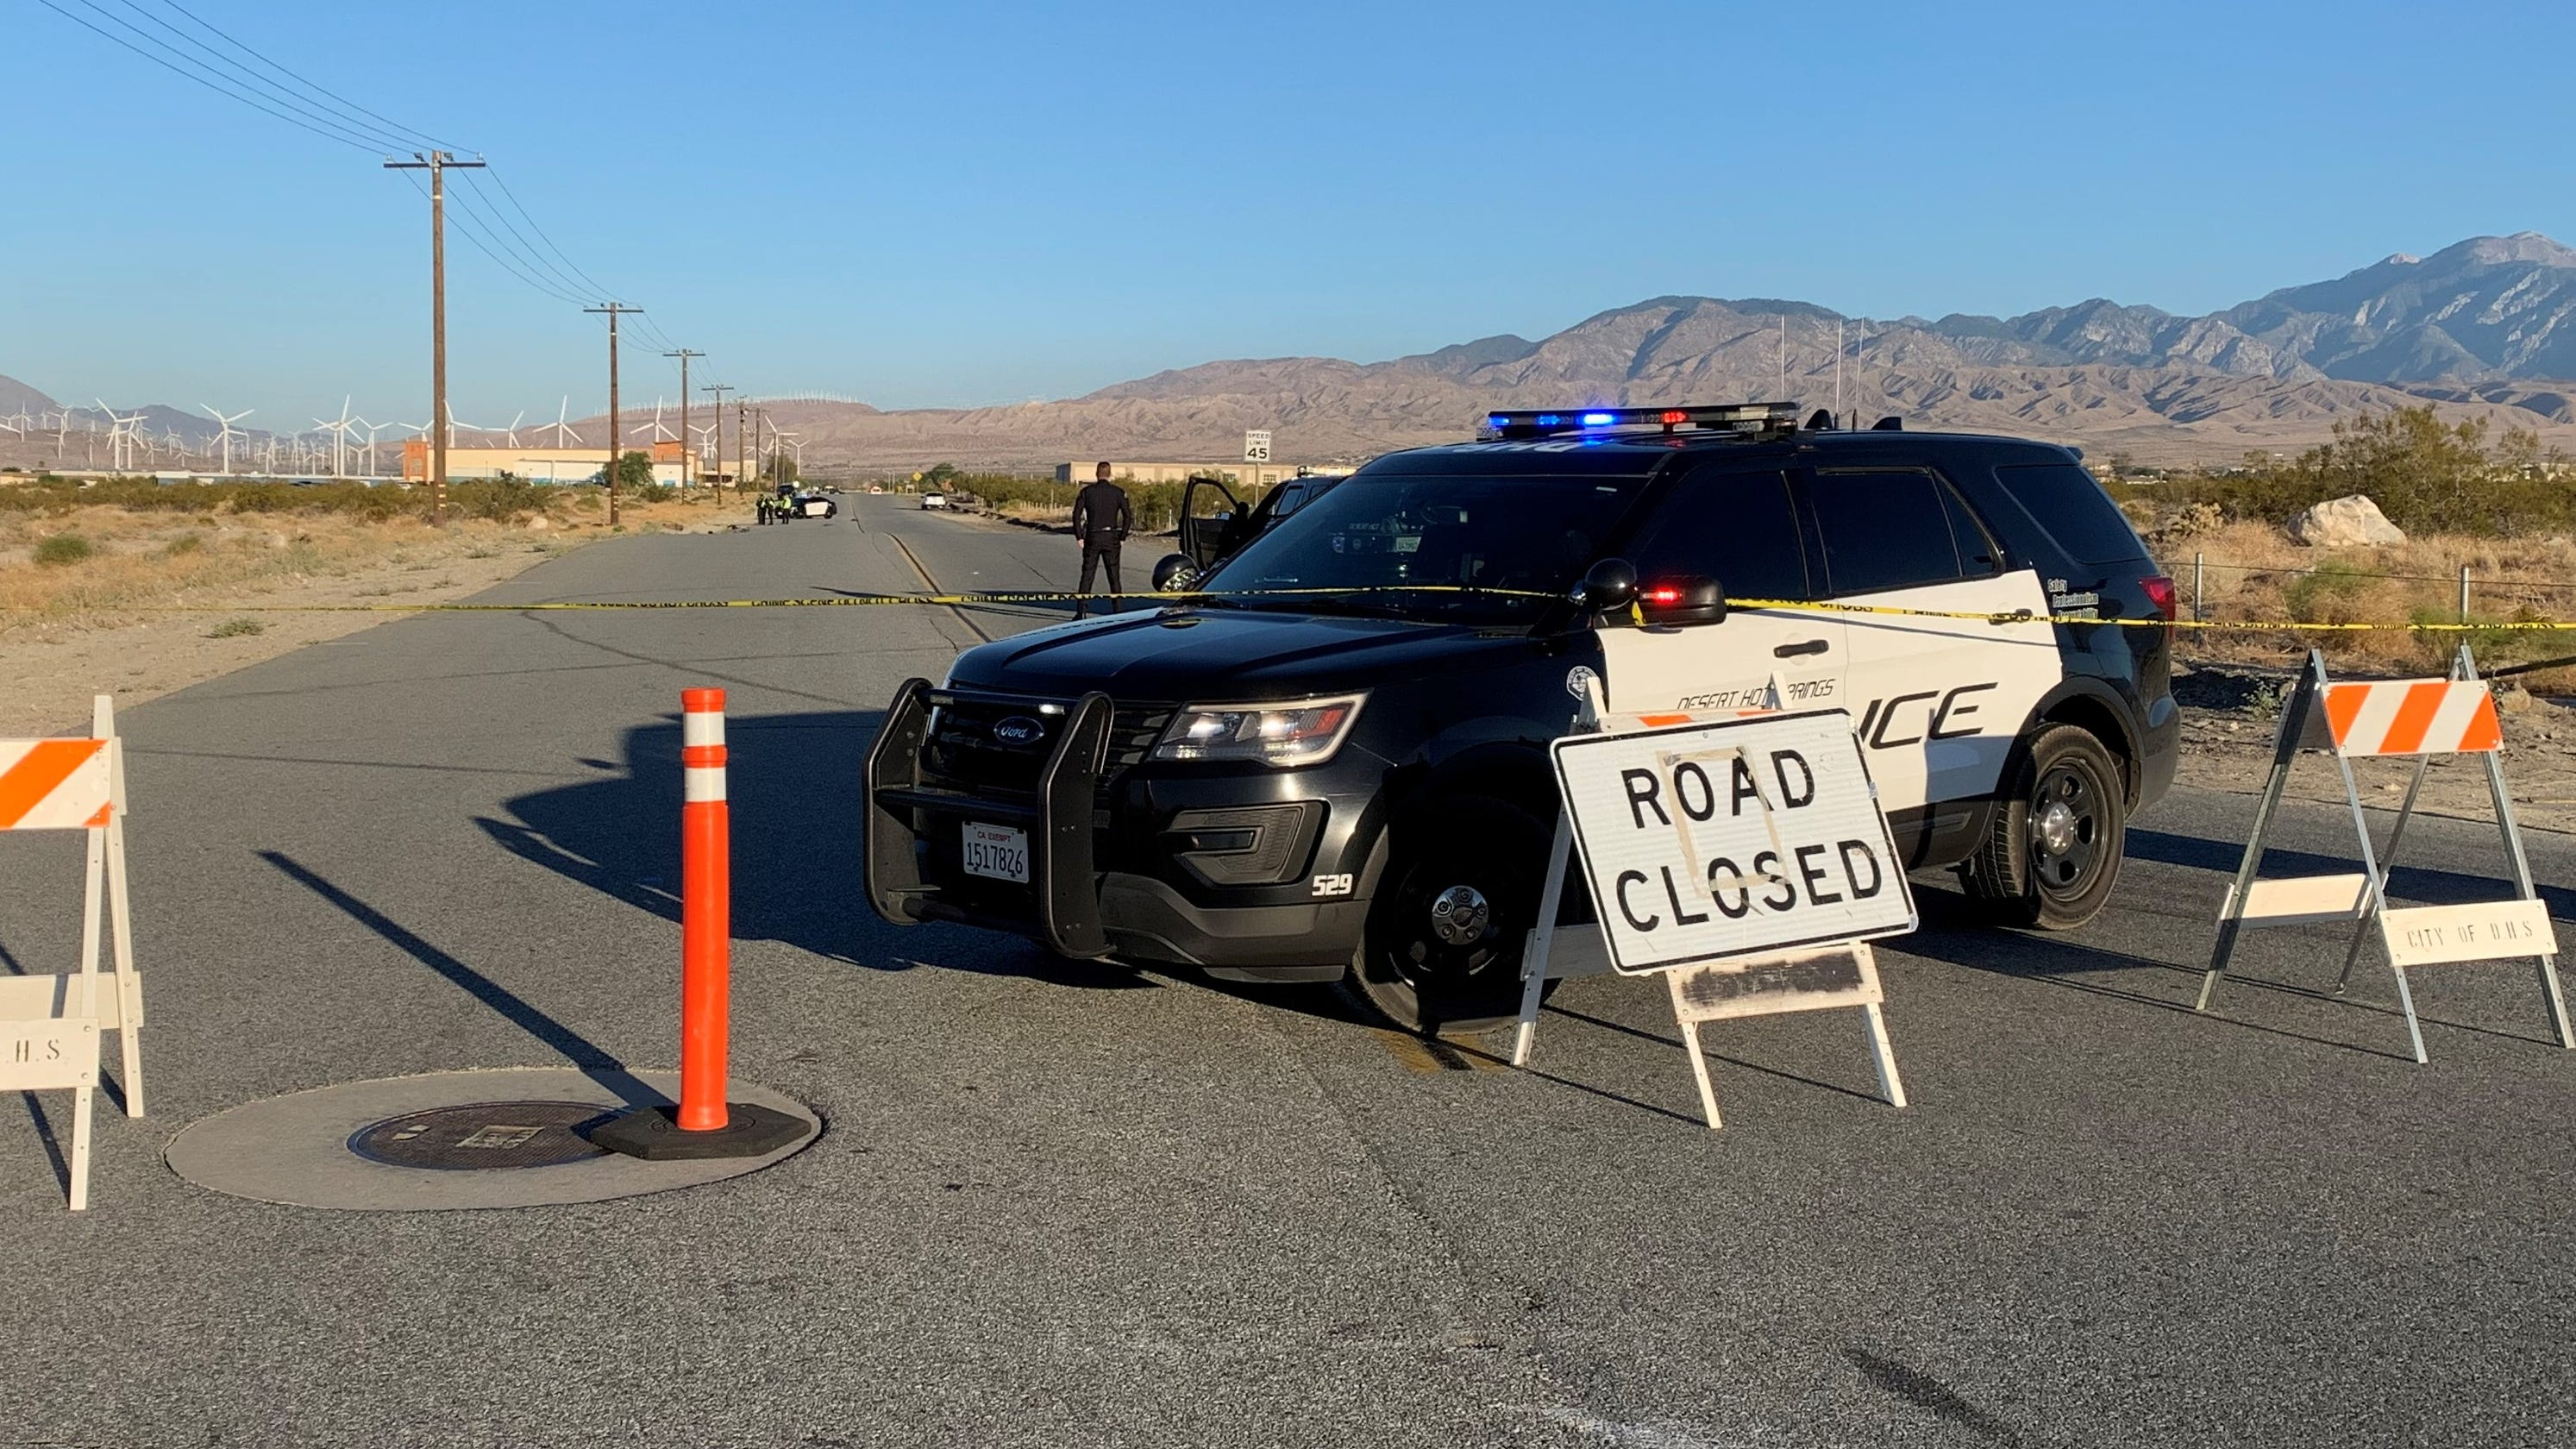 Desert Hot Springs woman arrested as suspect in hit-and-run that killed bicyclist